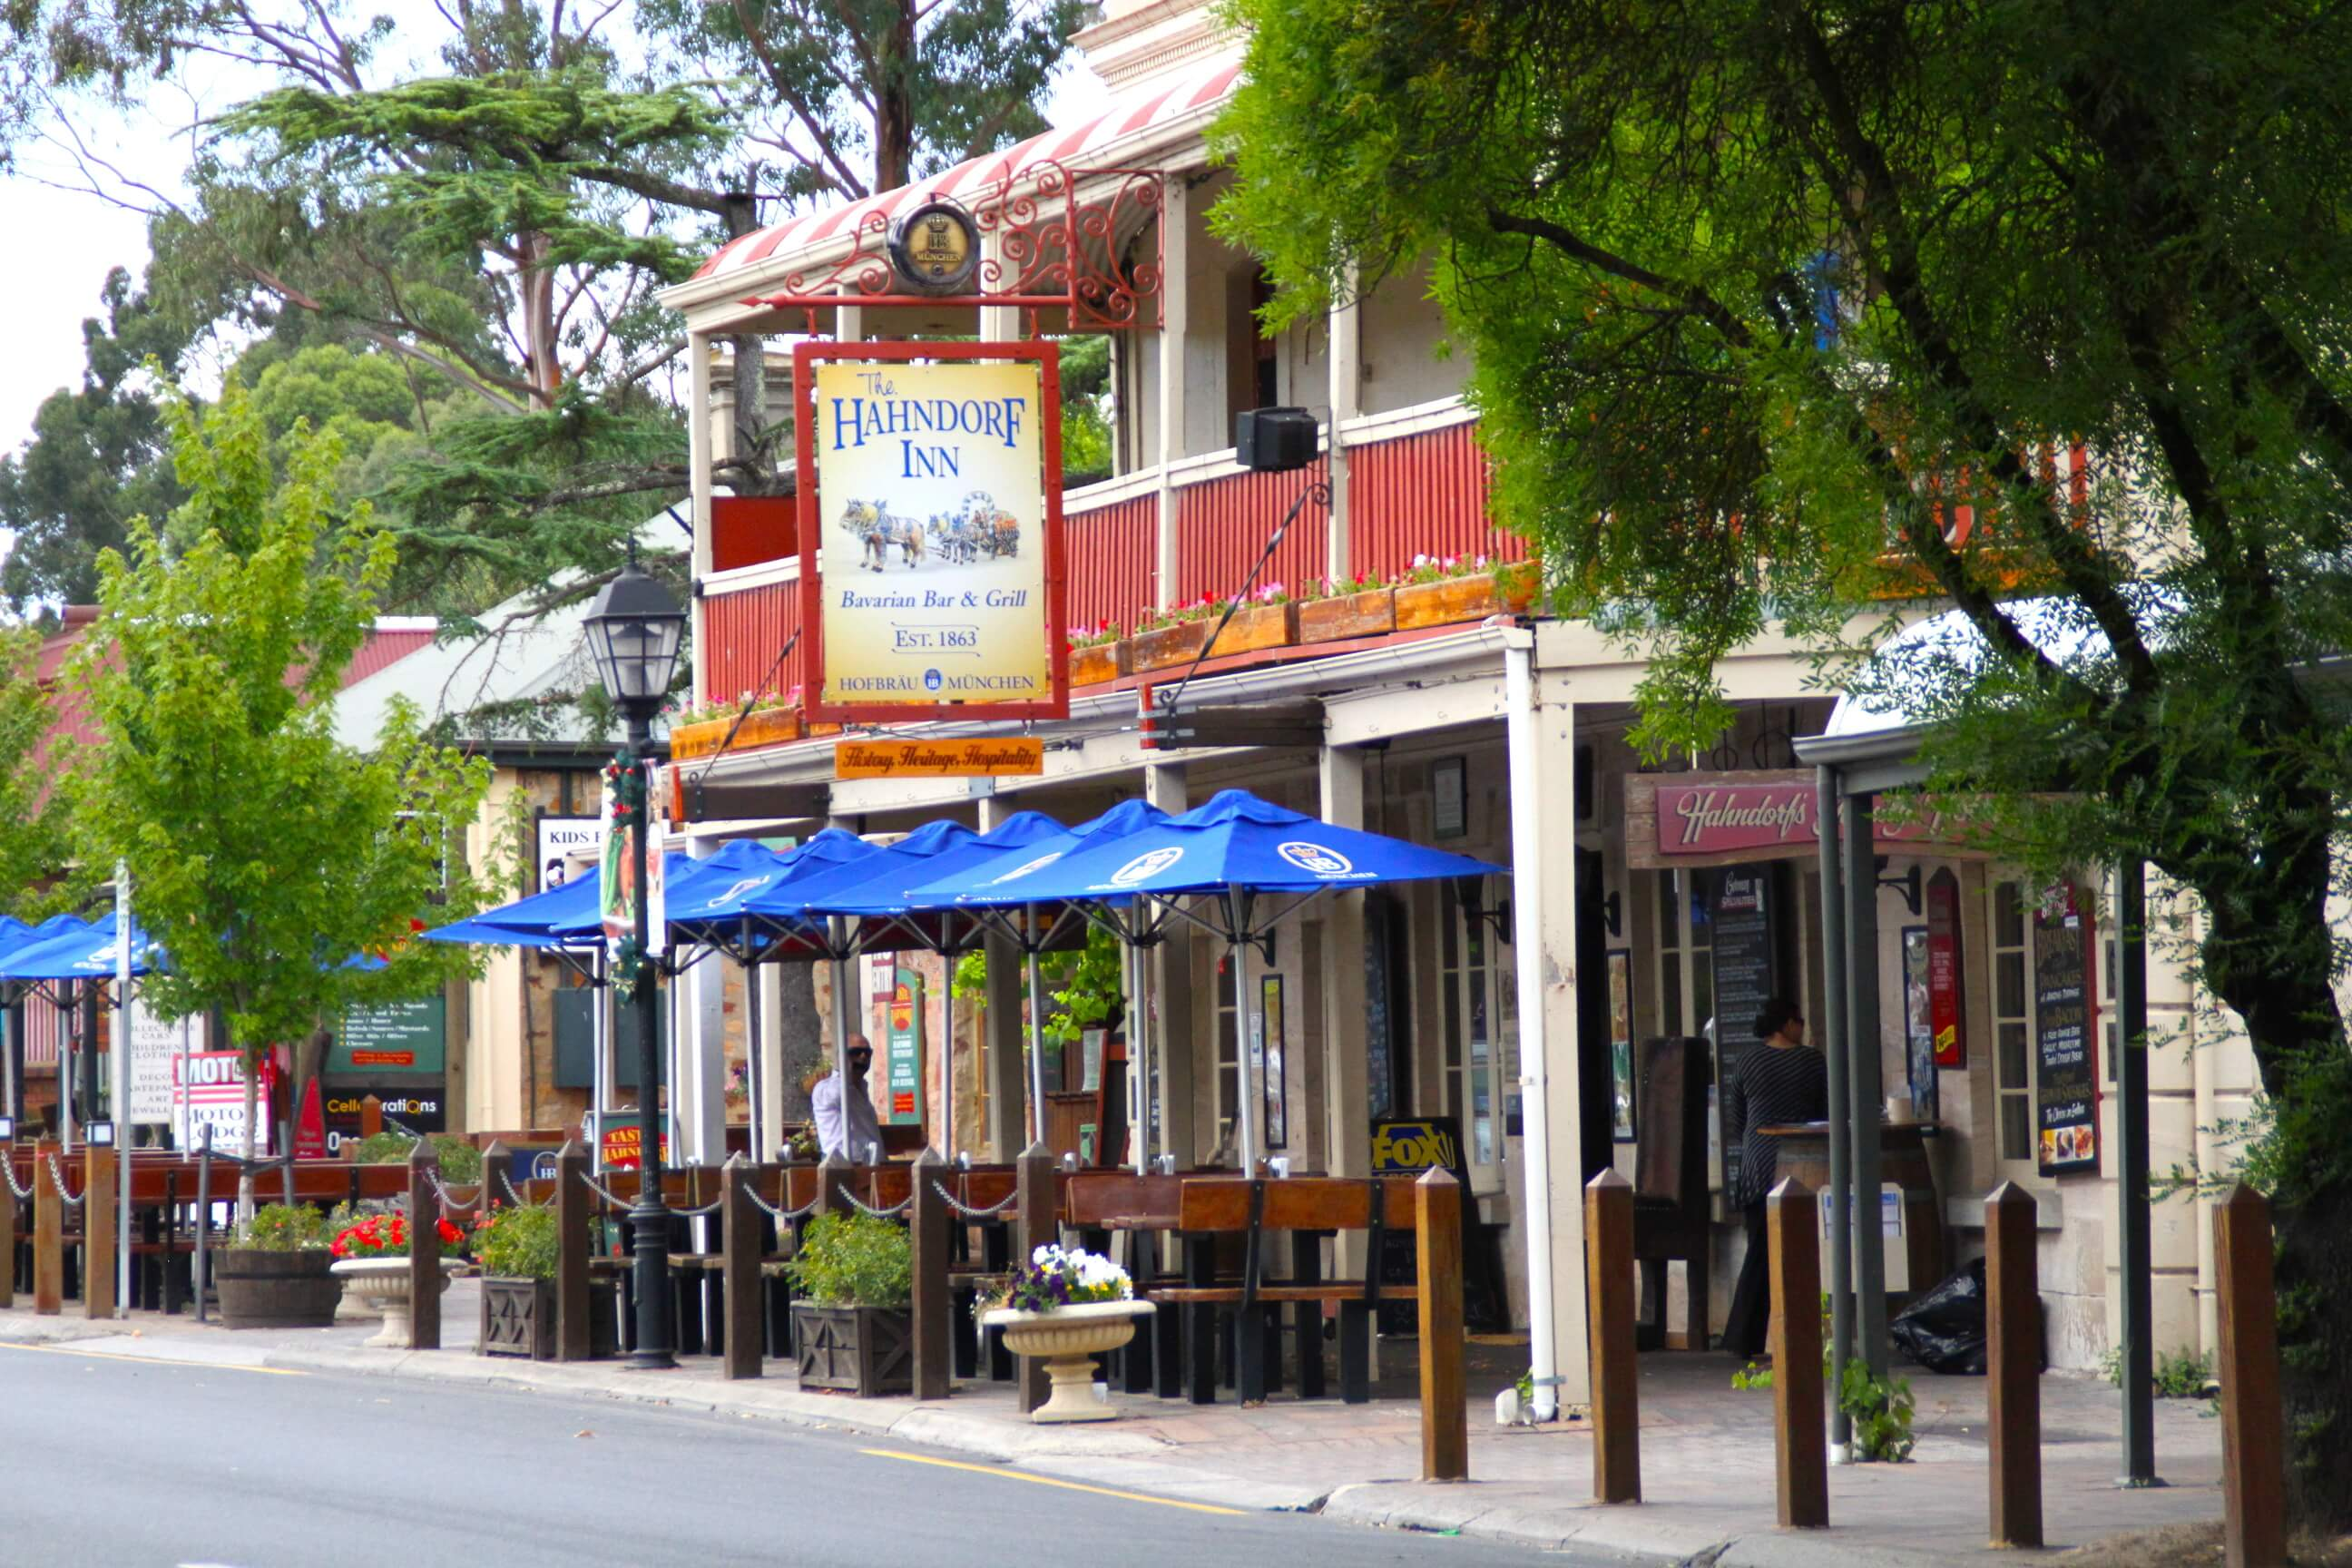 What to see and do in Hahndorf